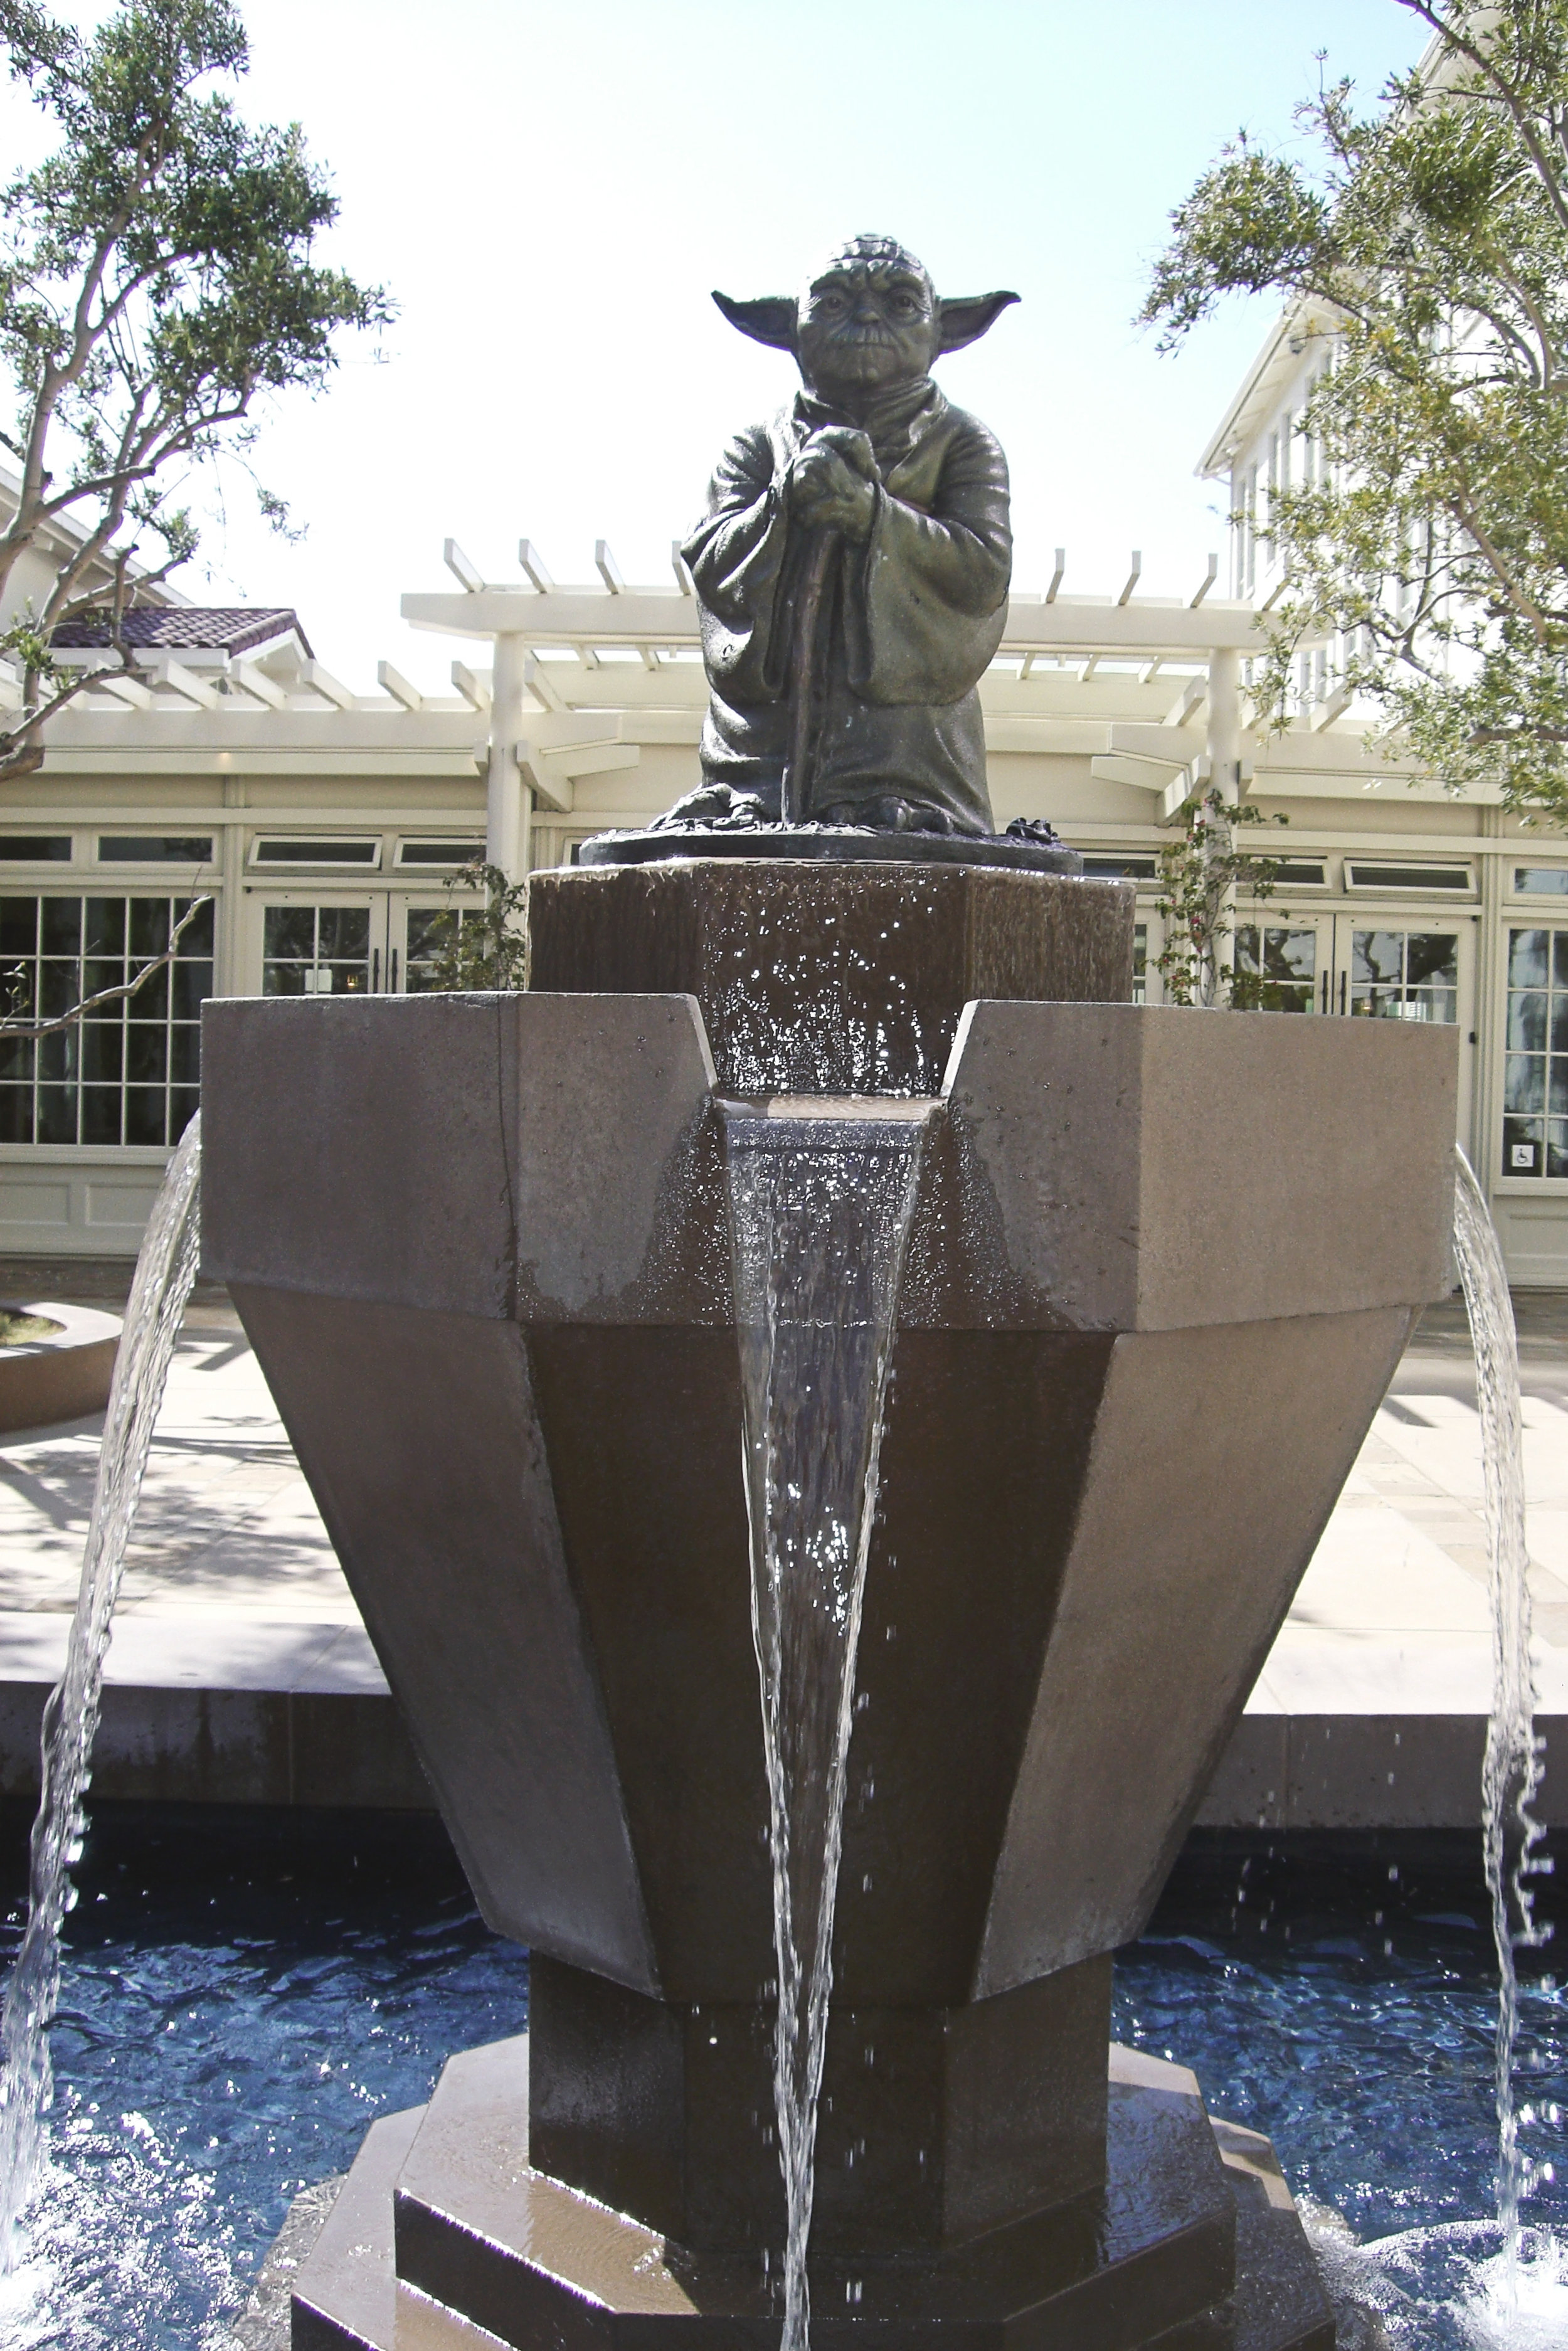 Yoda fountain (cool so he gets a photo feature!)